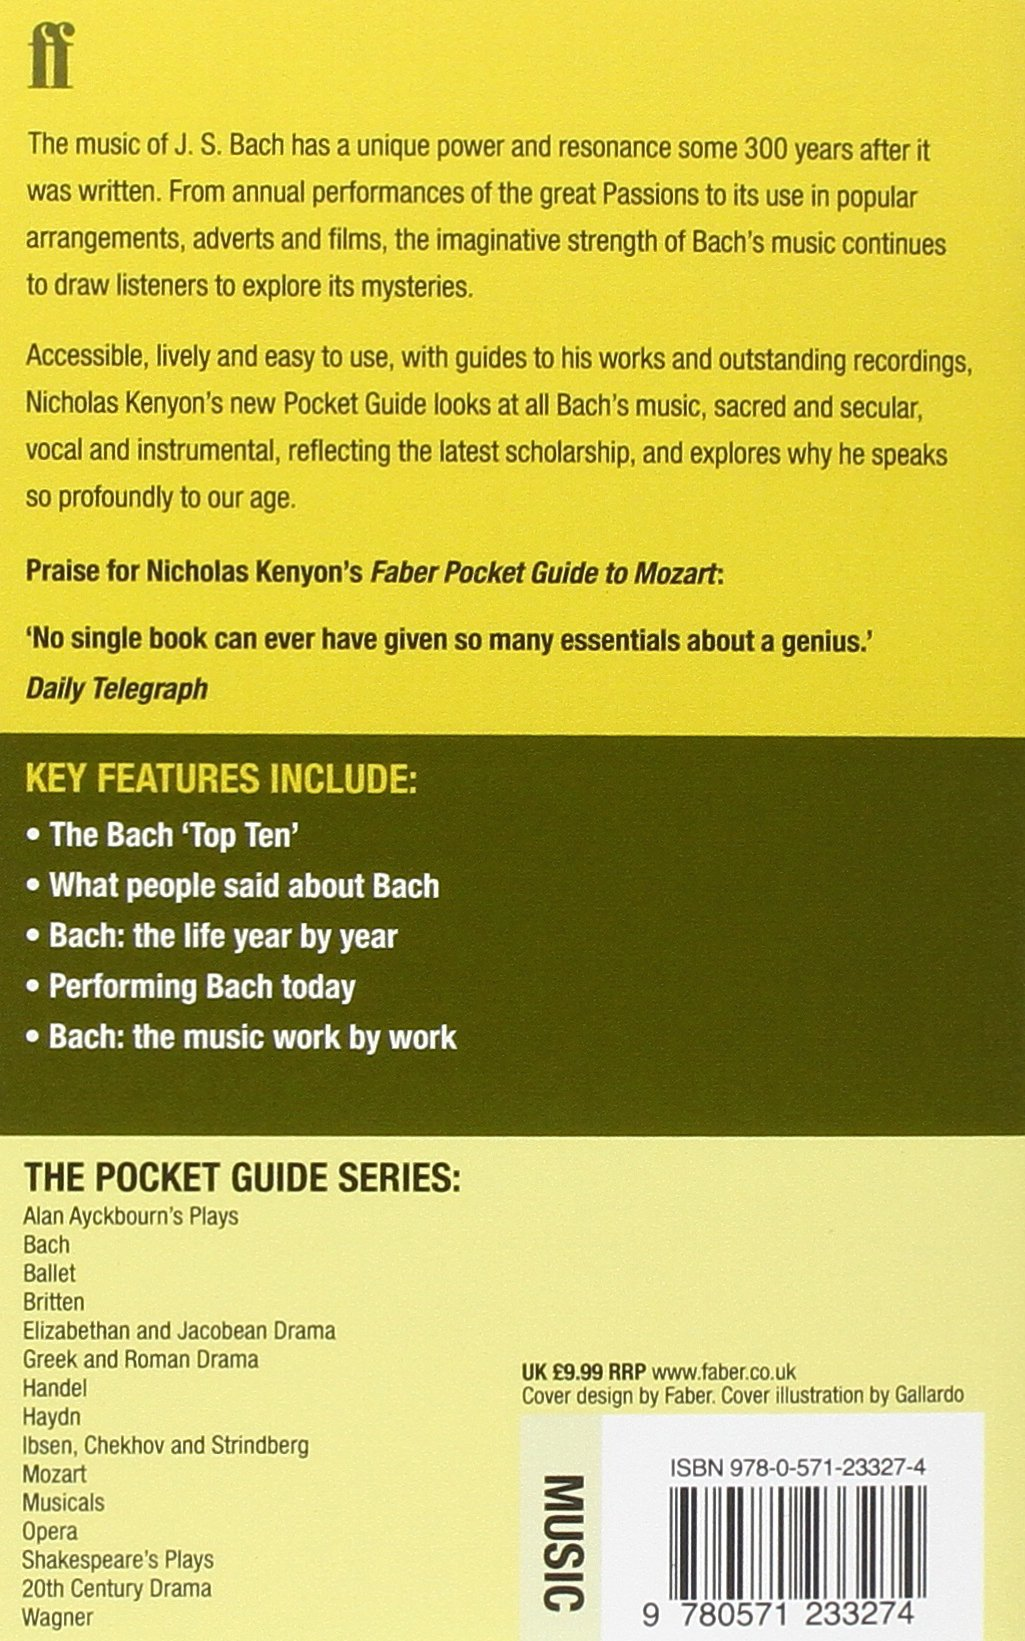 Customer Reviews: The Faber Pocket Guide to Handel